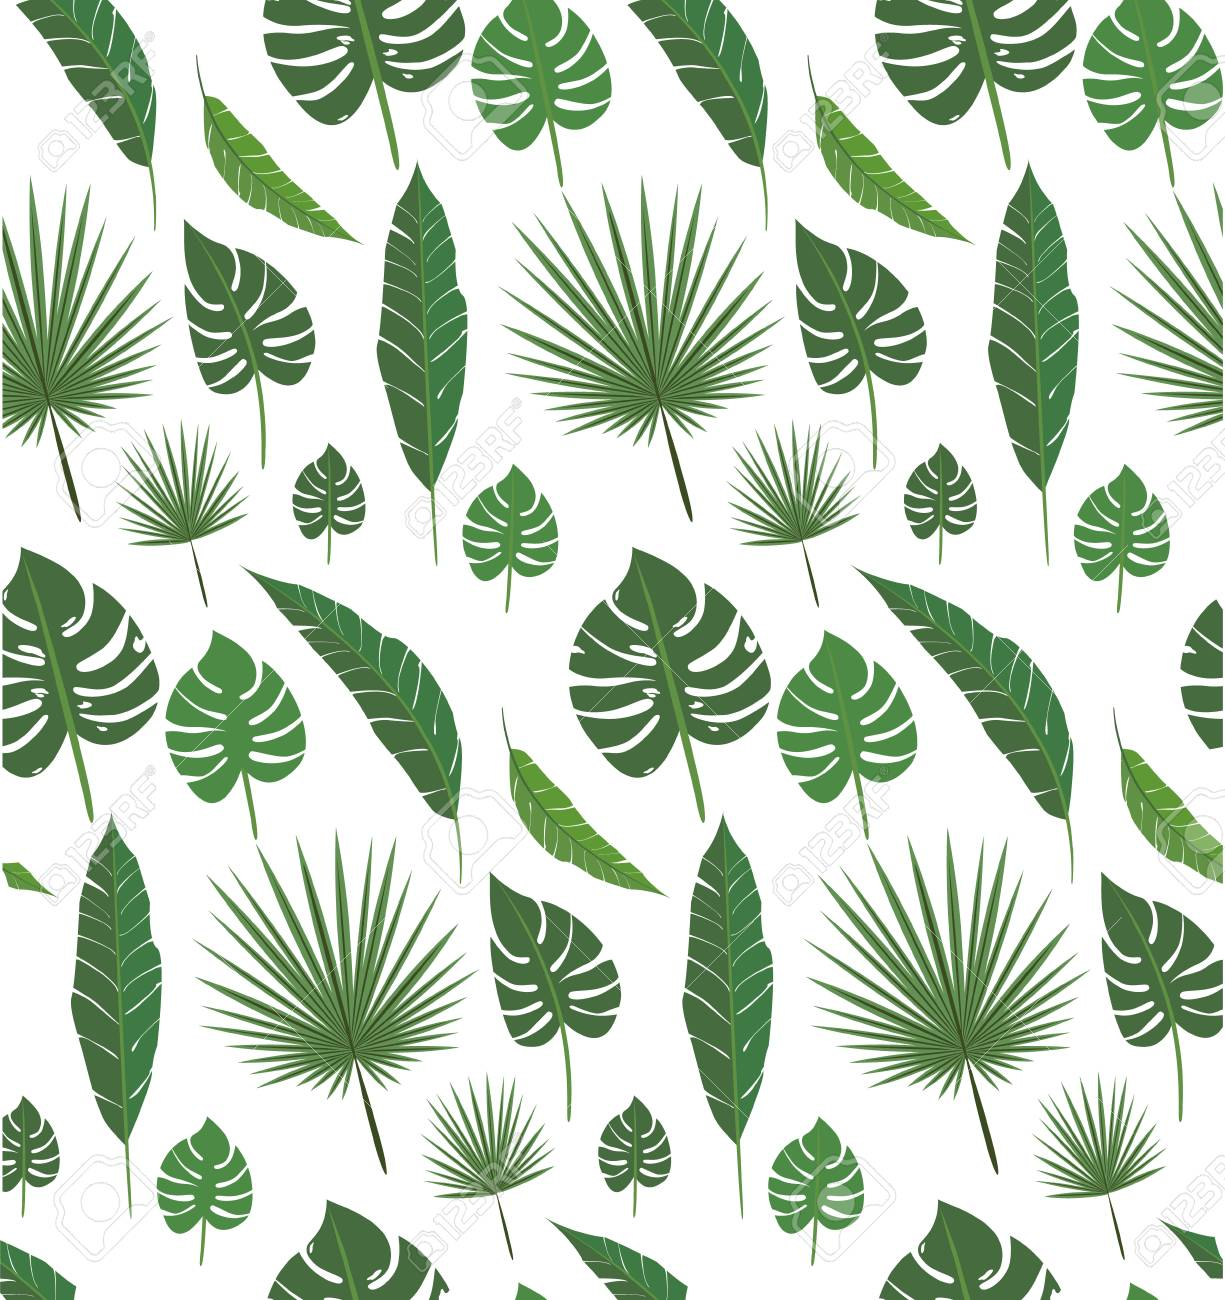 Palm Leafs Seamless Pattern Set For Decoration For Design Print Royalty Free Cliparts Vectors And Stock Illustration Image 110944638